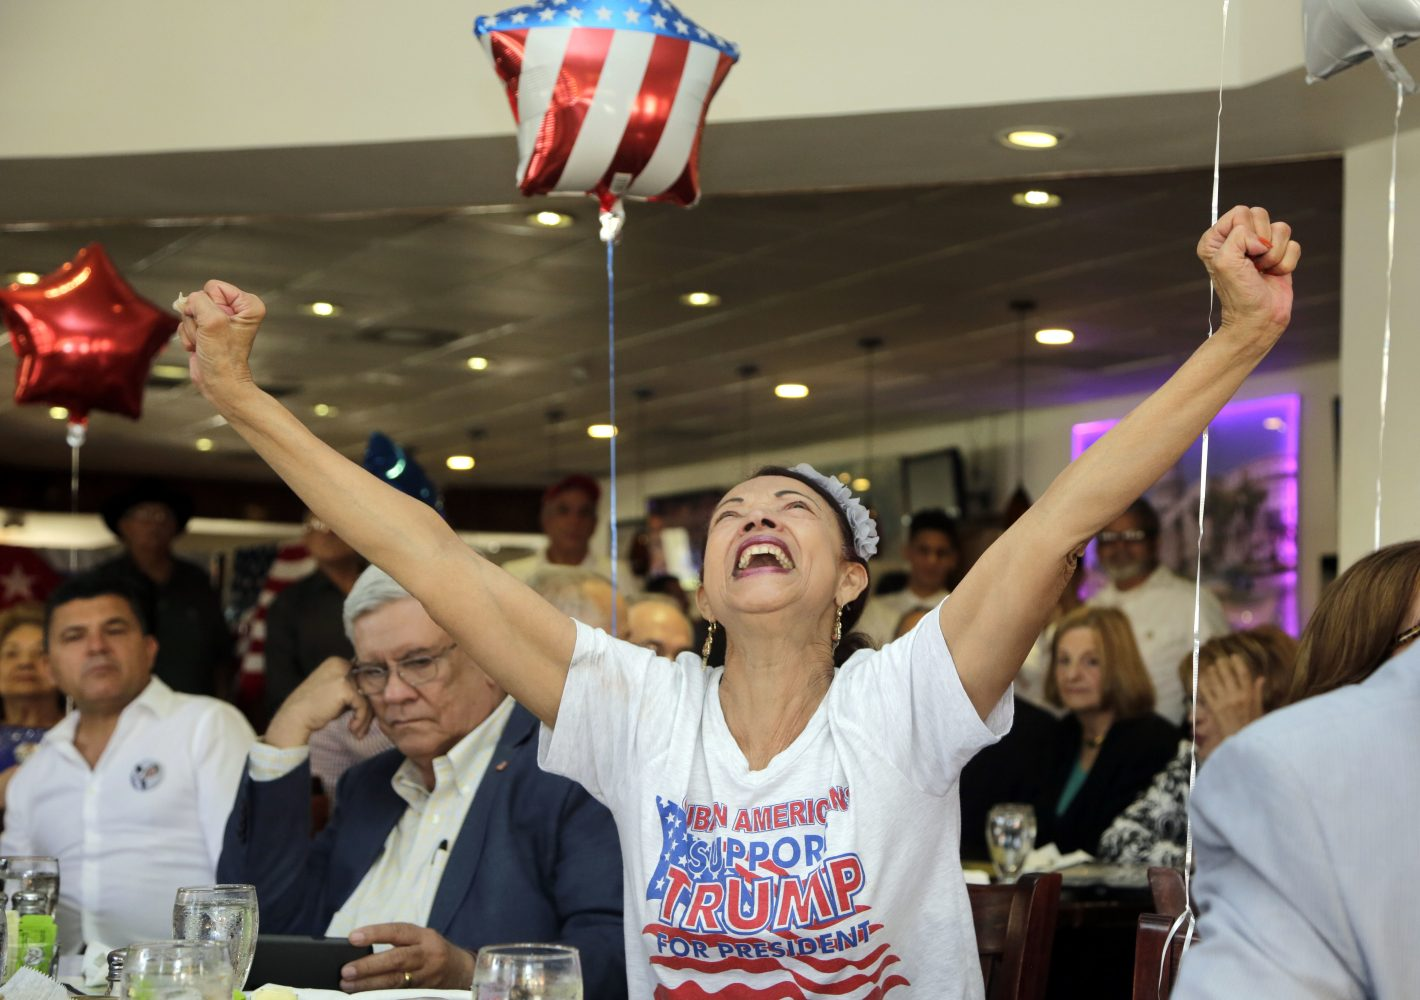 Julia del Rio cheers as she watches a televised broadcast of the presidential inauguration of Donald Trump, Friday, Jan. 20, 2017, during a watch party organized by Hispanas for Trump, in Miami. (AP Photo/Lynne Sladky)